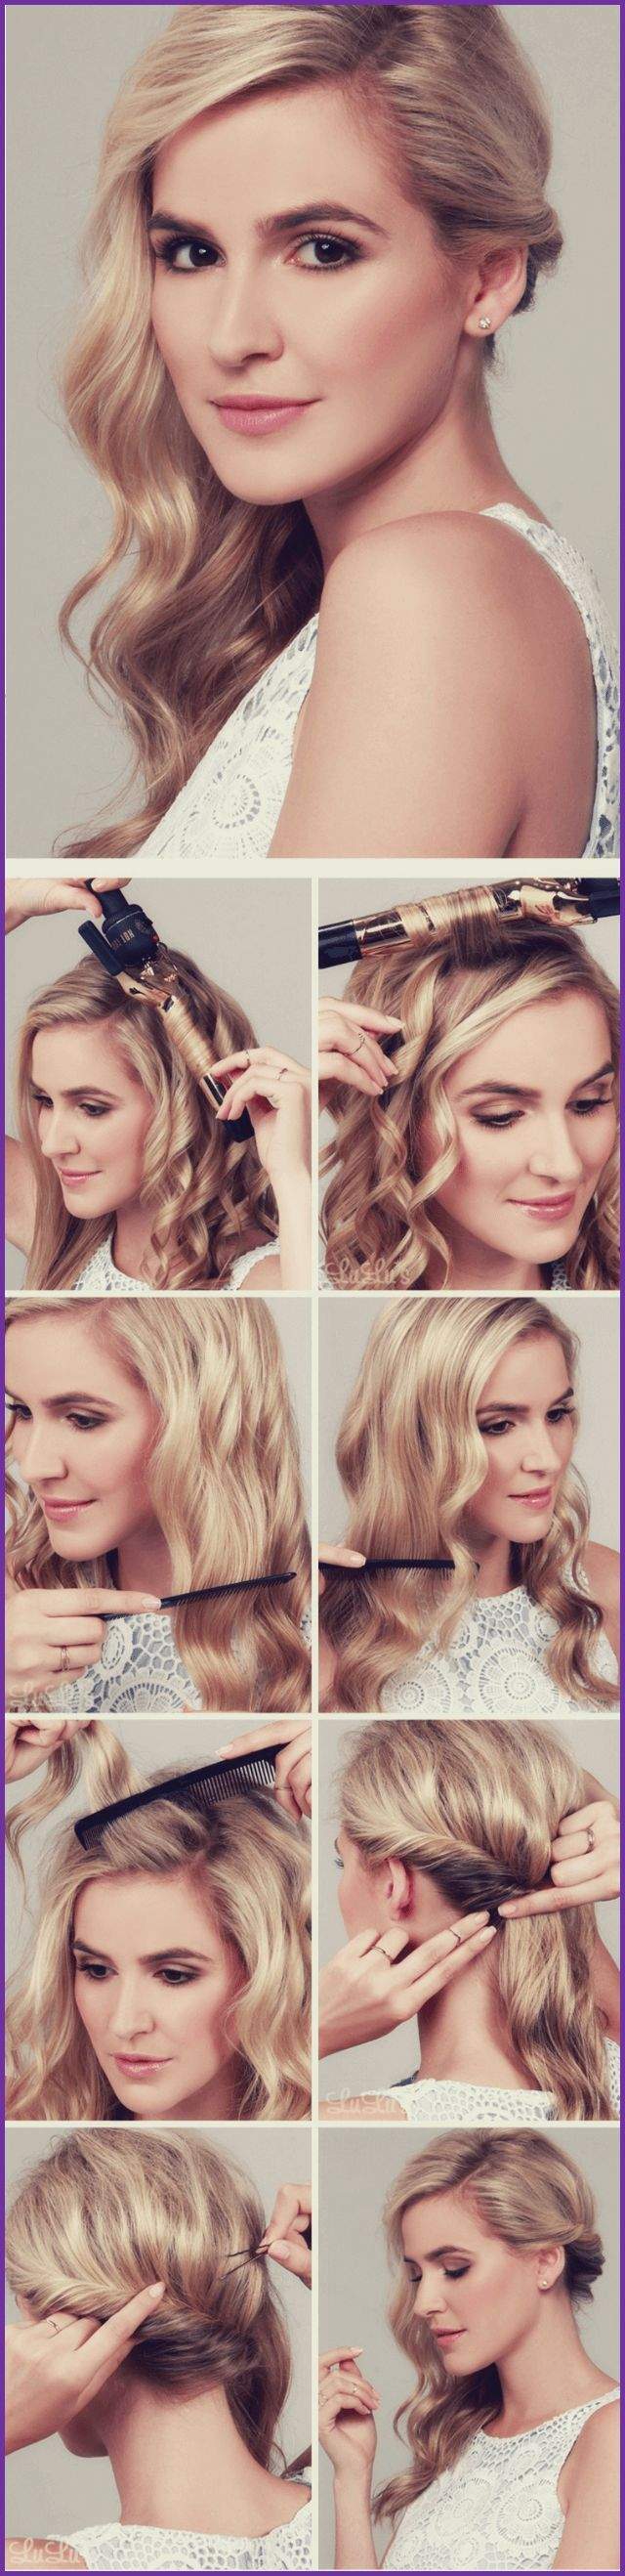 Model curls strands with a curling iron and combs it slowly to get the soft, wavy effect